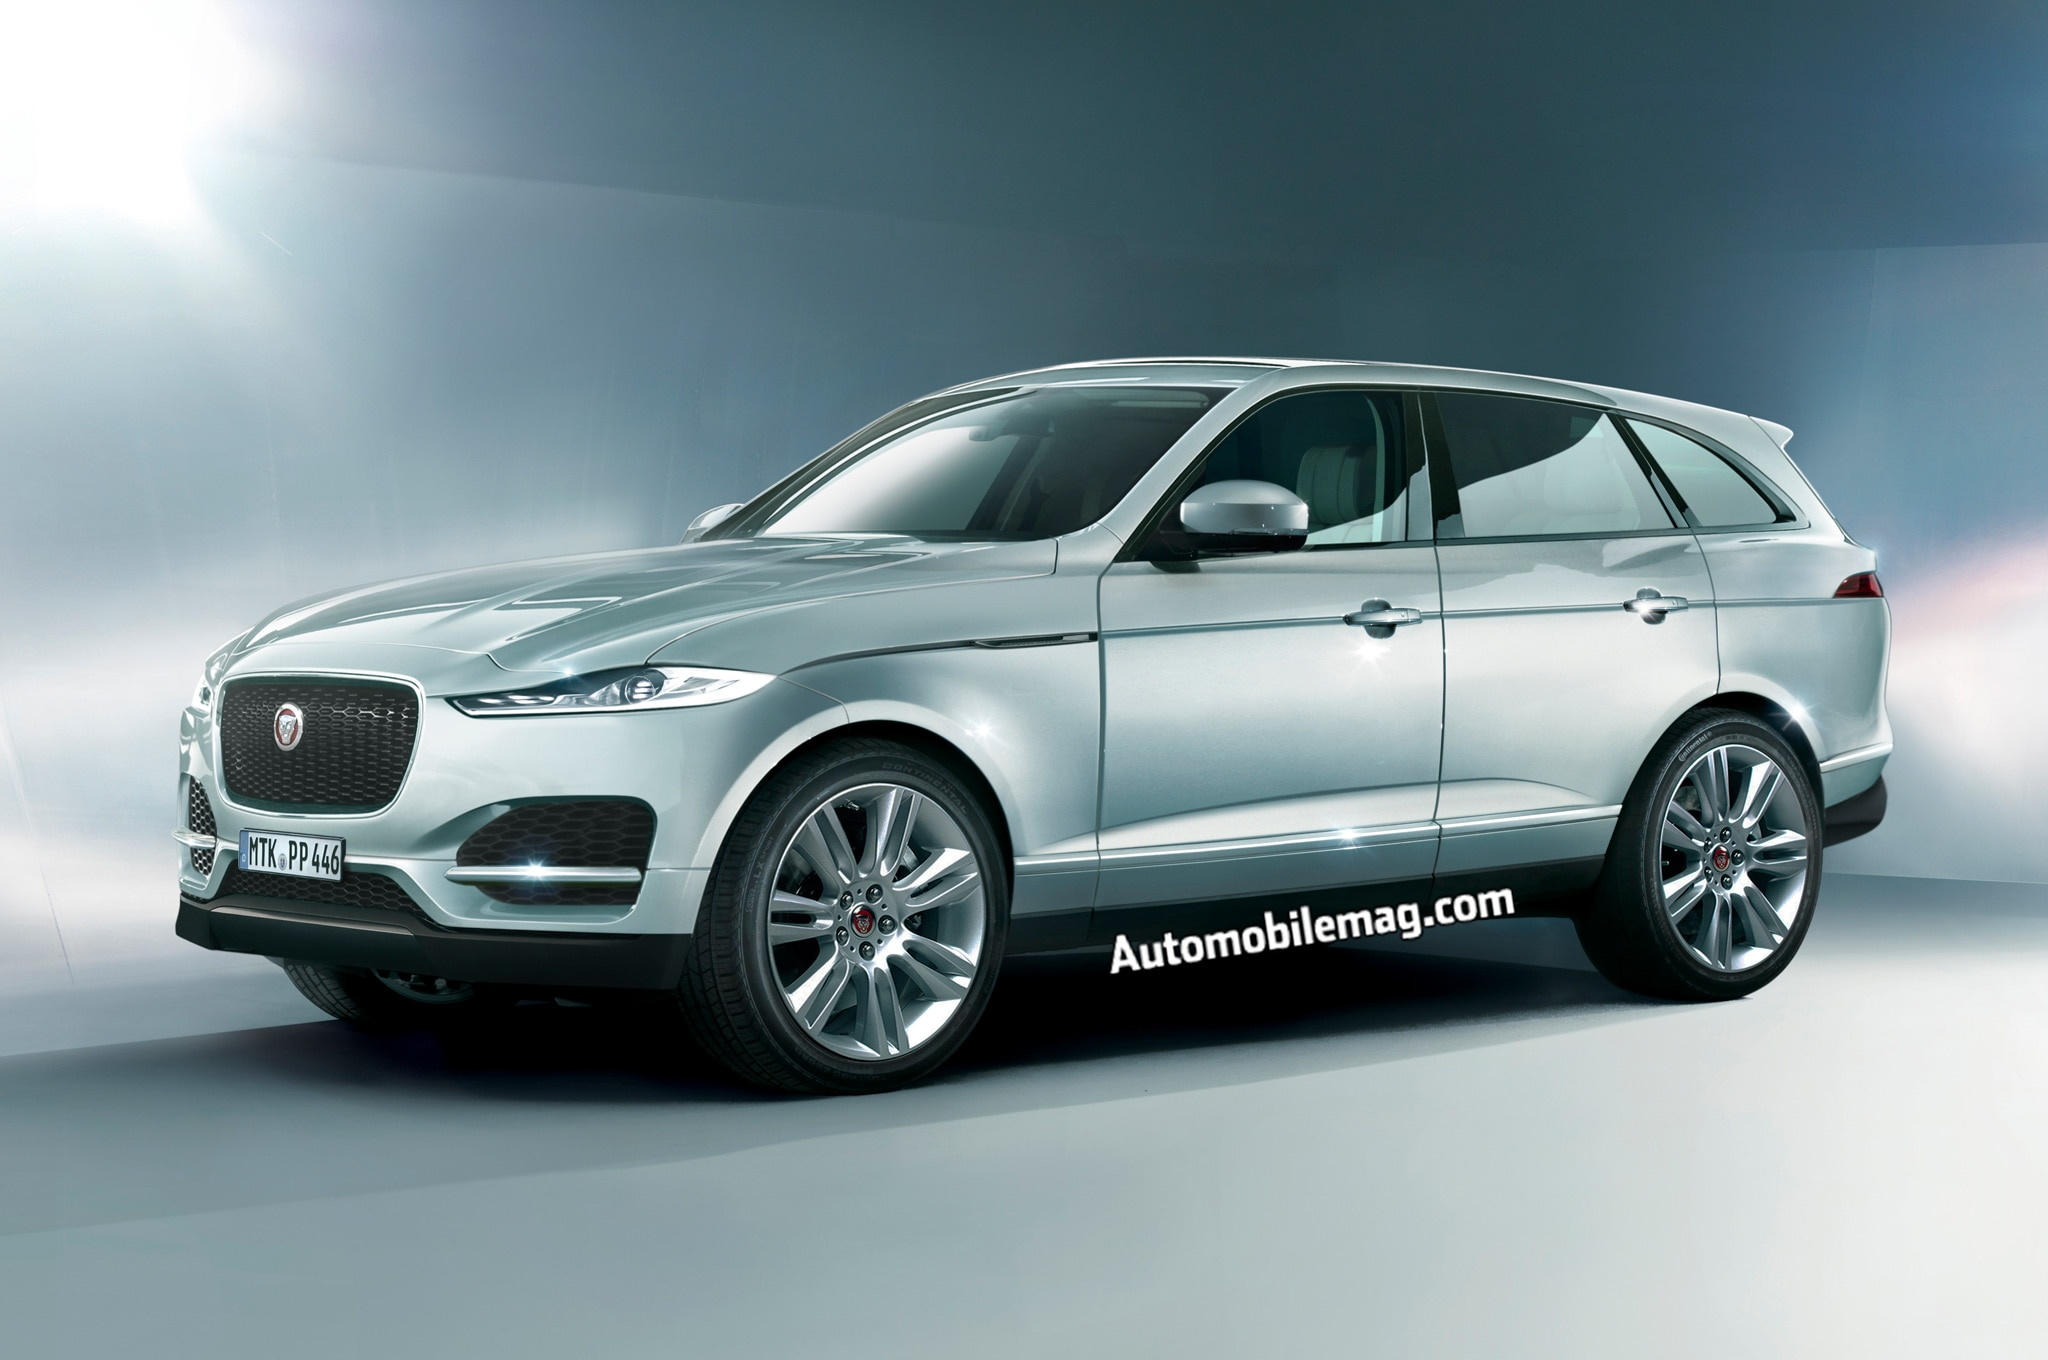 Jeep Performance Engines Deep Dive: Jaguar Setting the Pace for Future SUVs